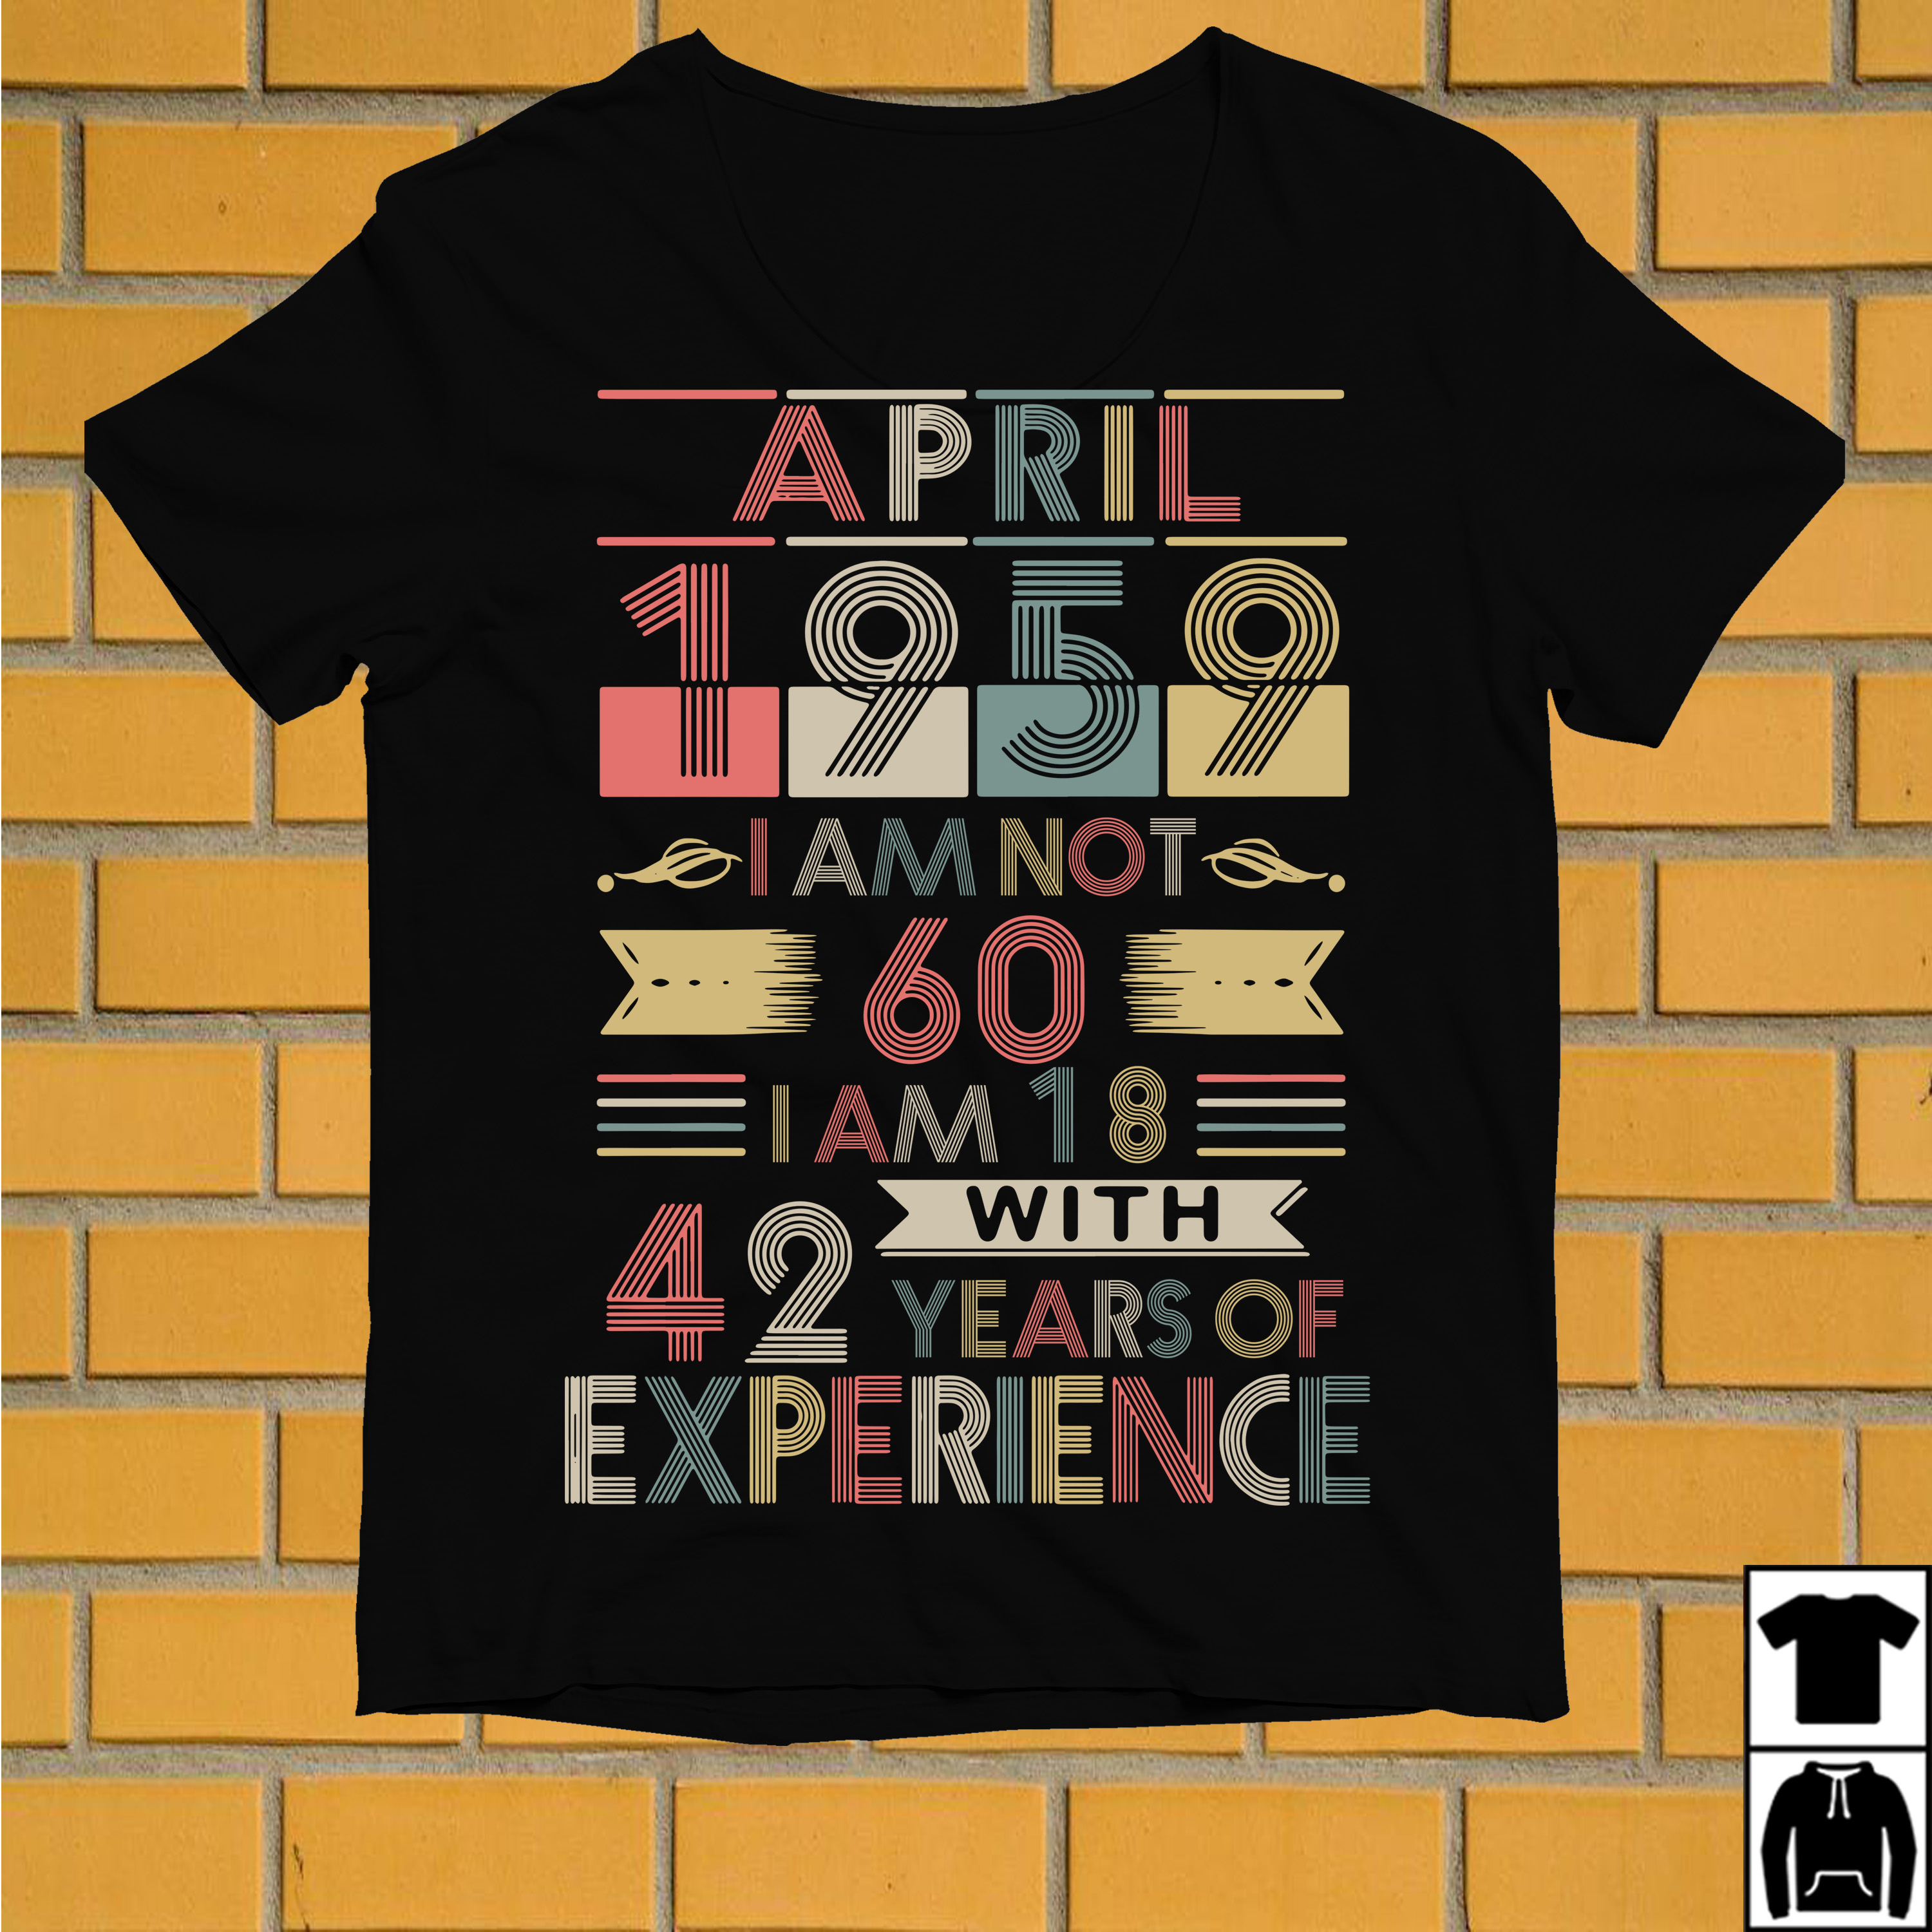 April 1959 I am not 60 I am 18 with 42 years of experience shirt